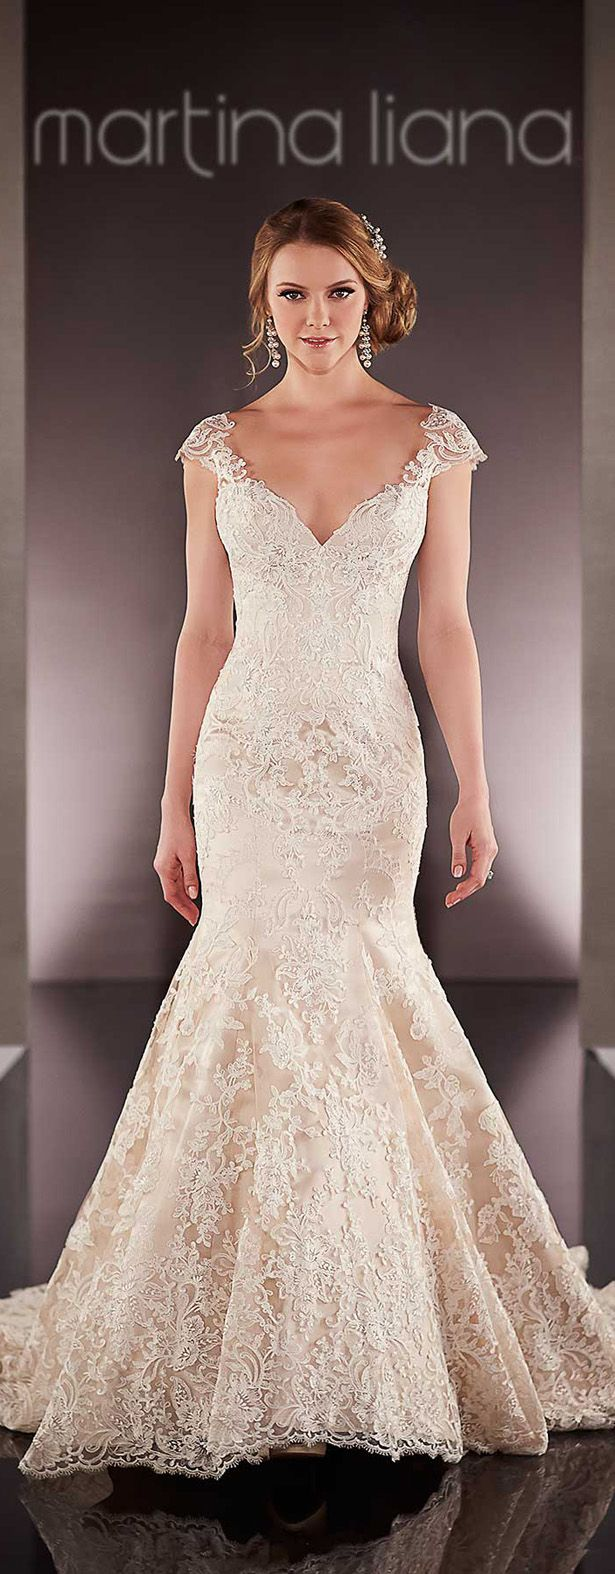 Martina Liana Spring 2016 Wedding Dress #coupon code nicesup123 gets 25% off at  Provestra.com Skinception.com